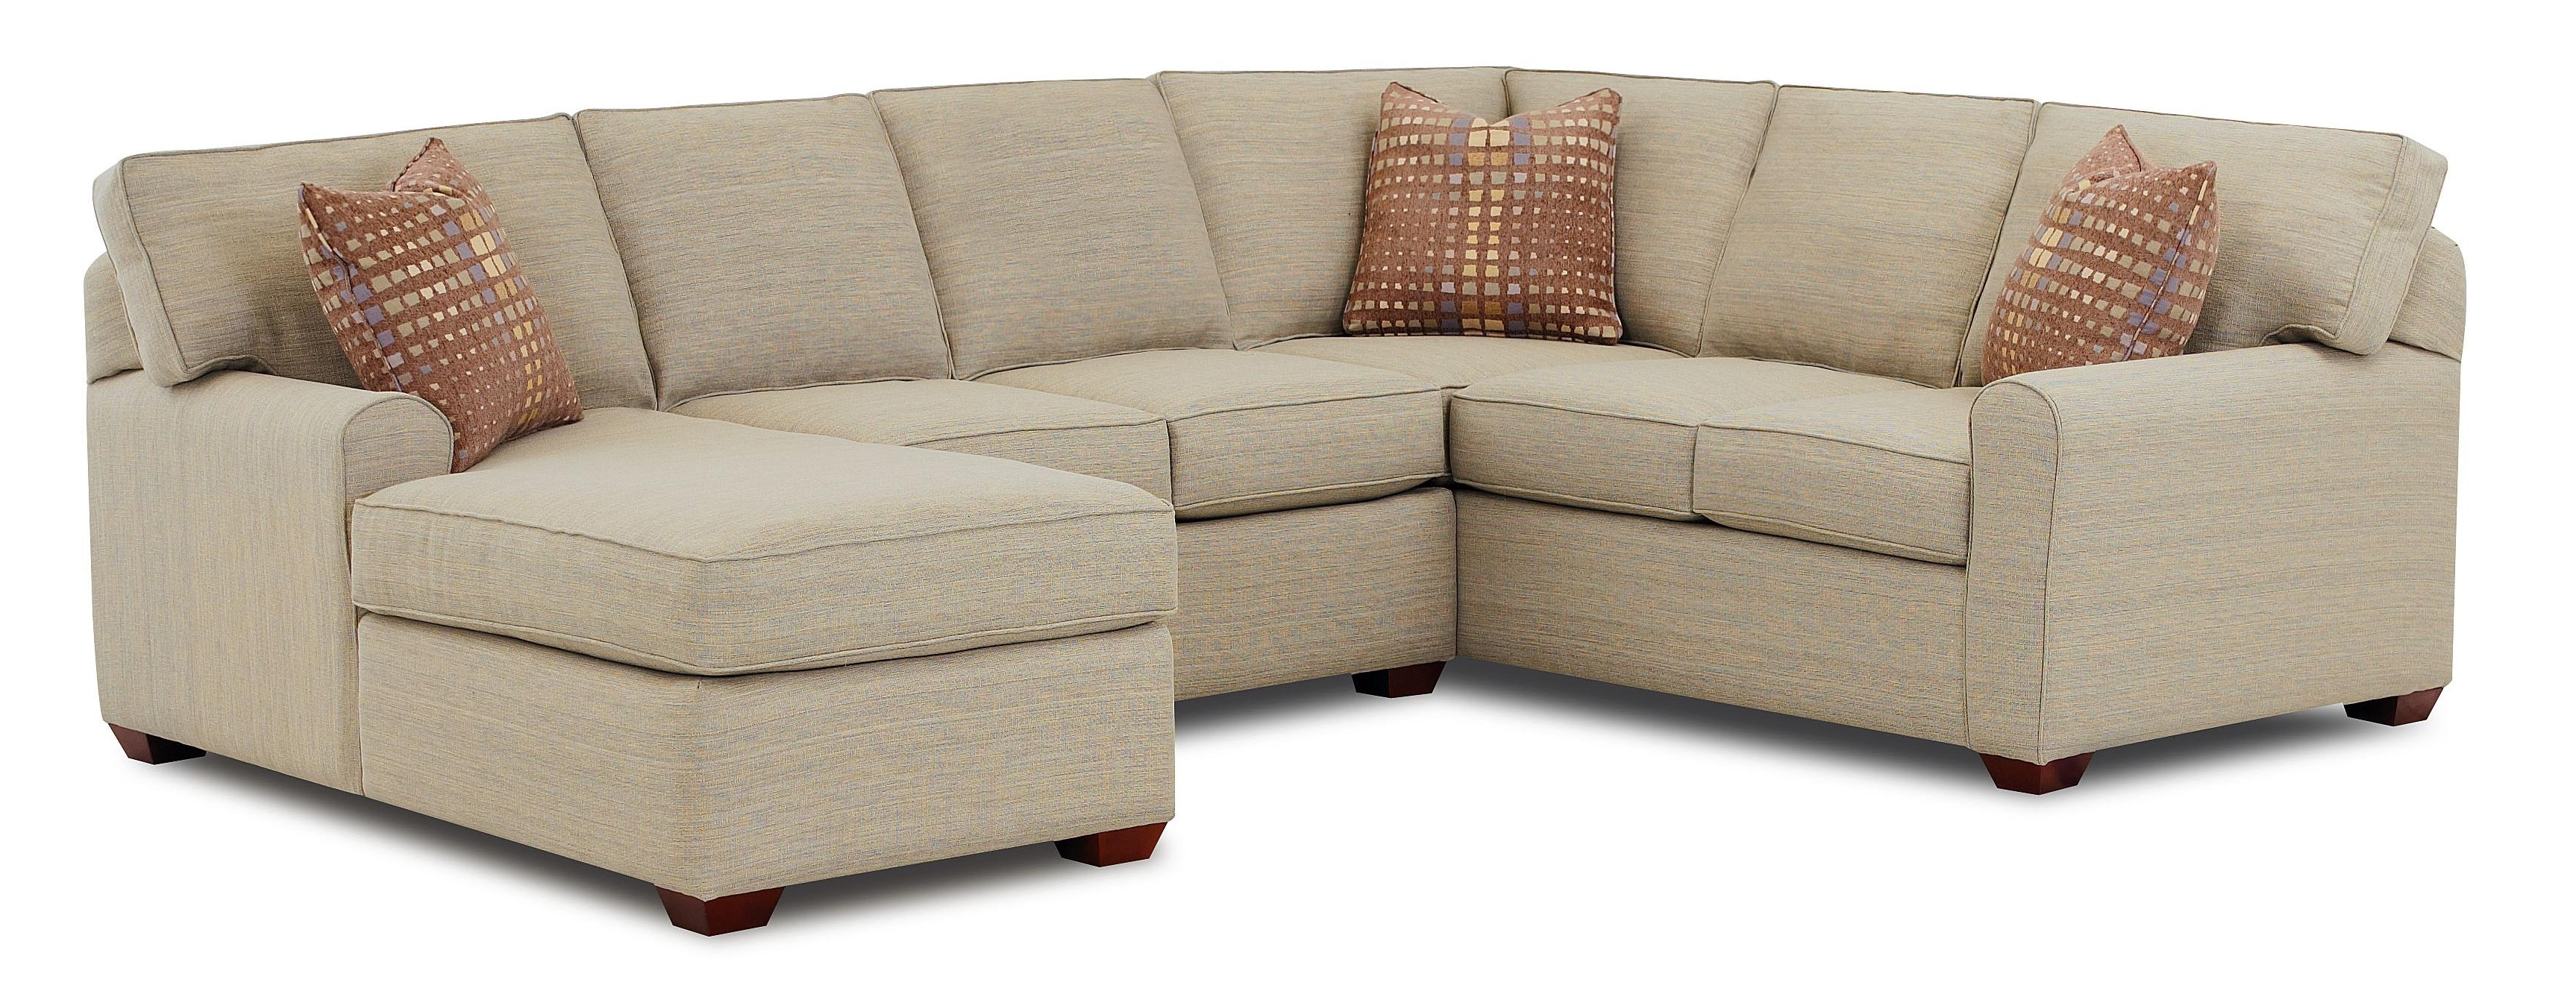 Couches With Chaise Lounge Within Latest Lovely Chaise Lounge Couch 58 For Your Modern Sofa Inspiration (View 4 of 15)